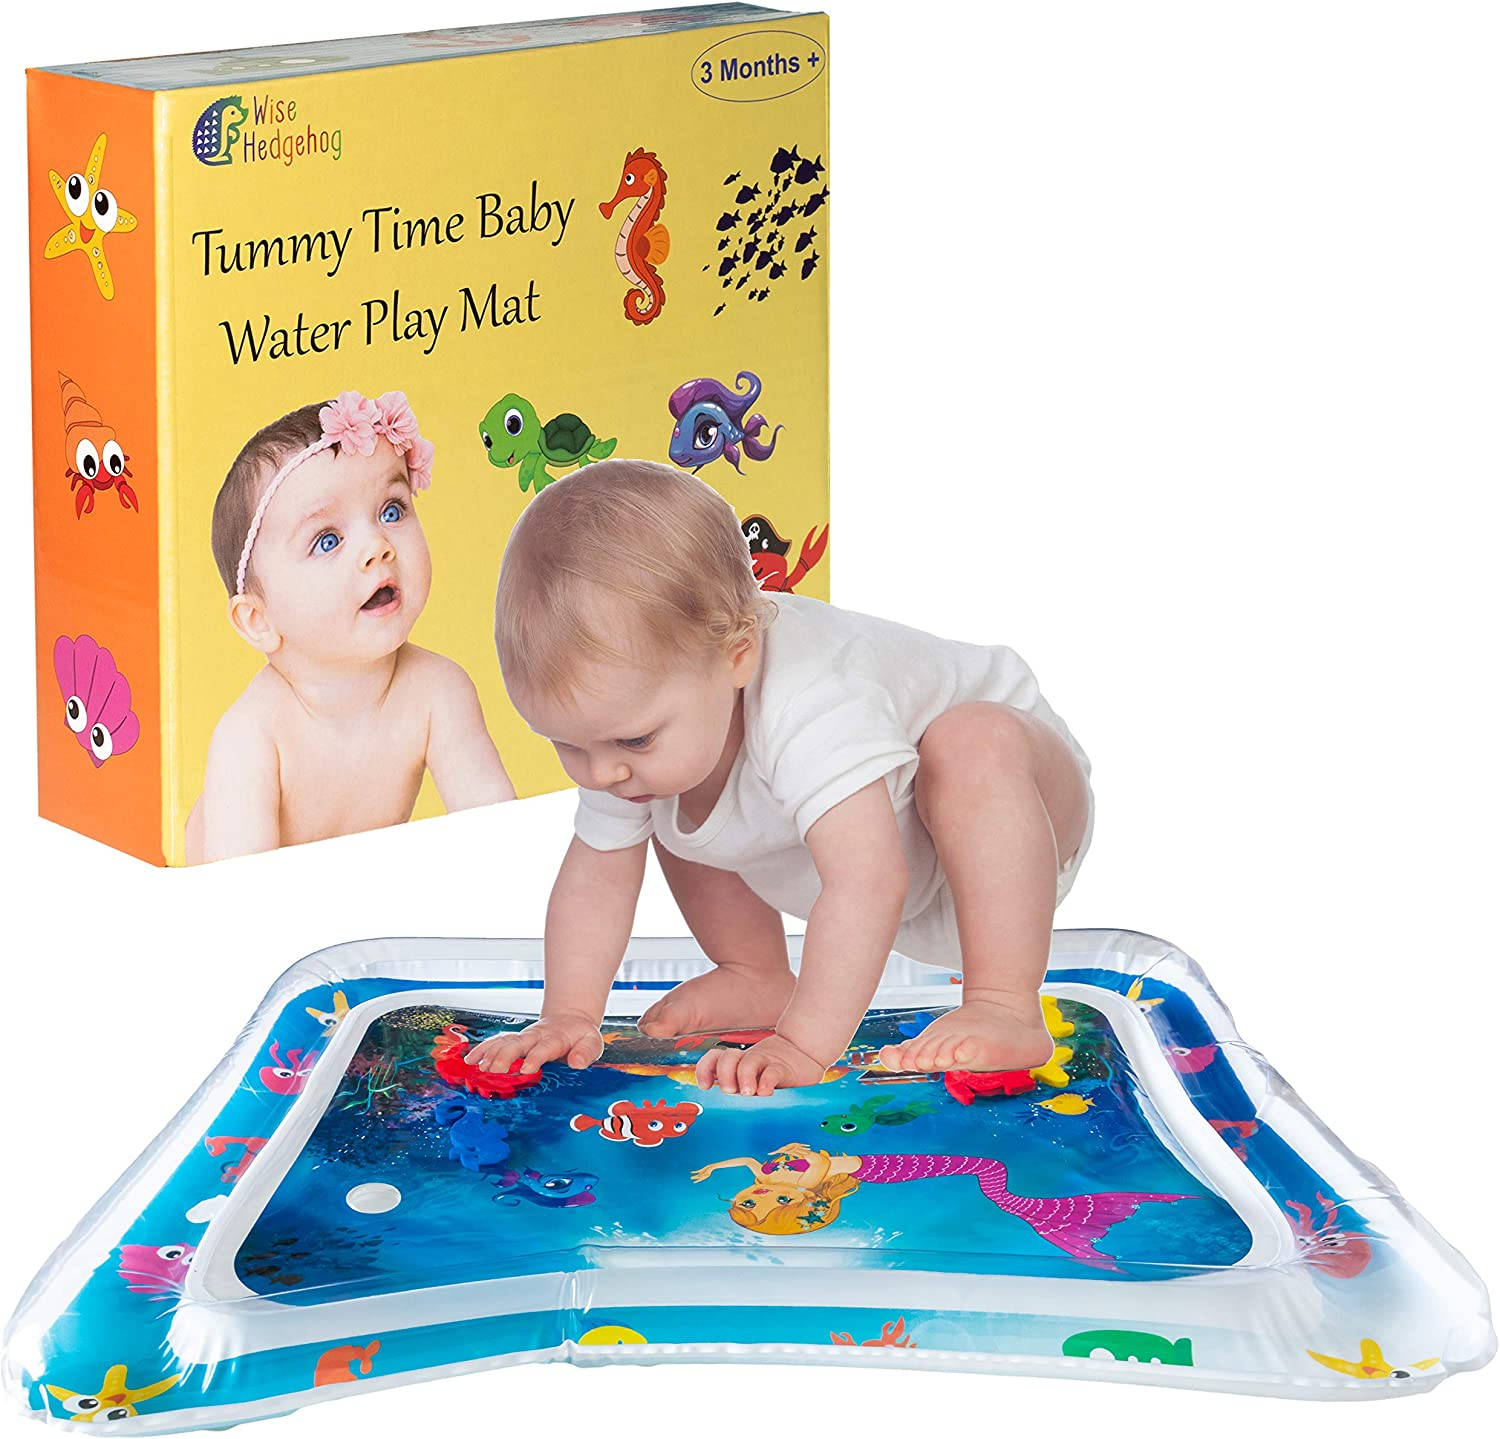 Great for 3 6 9 Month Girl Boy Inflatable Baby Water Play Mat Magical Underwater Scene Baby Will Love Wise Hedgehog Tummy Time Mat